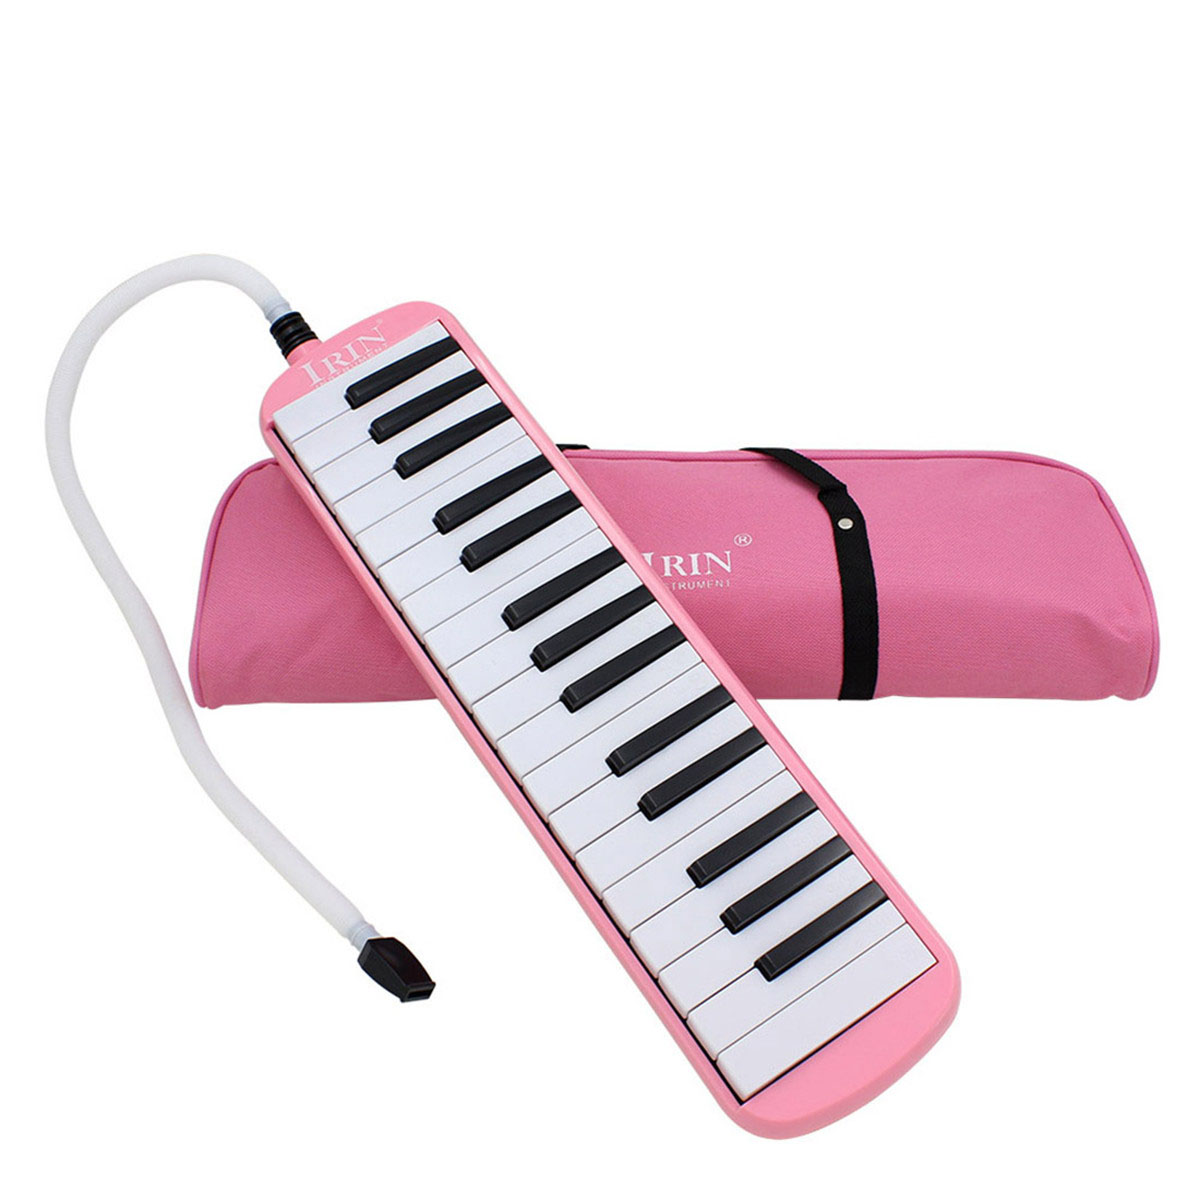 32 Keys Electronic Melodica Harmonica Keyboard Durable Musical Instruments Performance  With Handbag